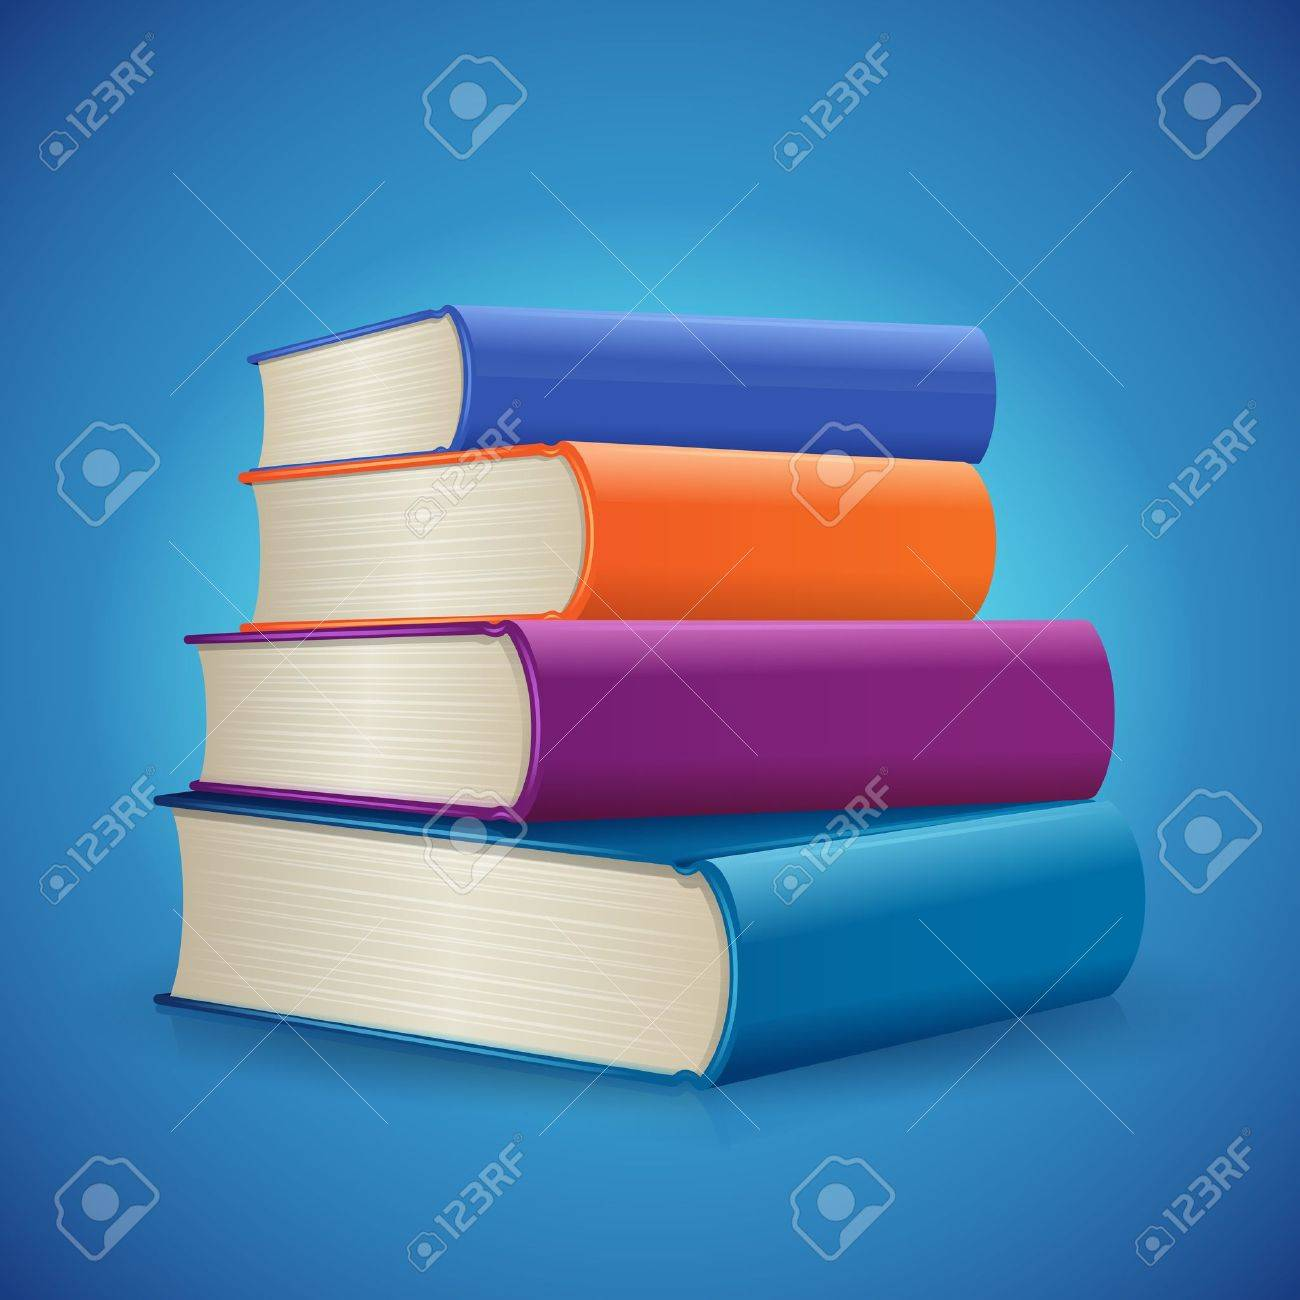 Stack of Books Stock Vector - 14588007